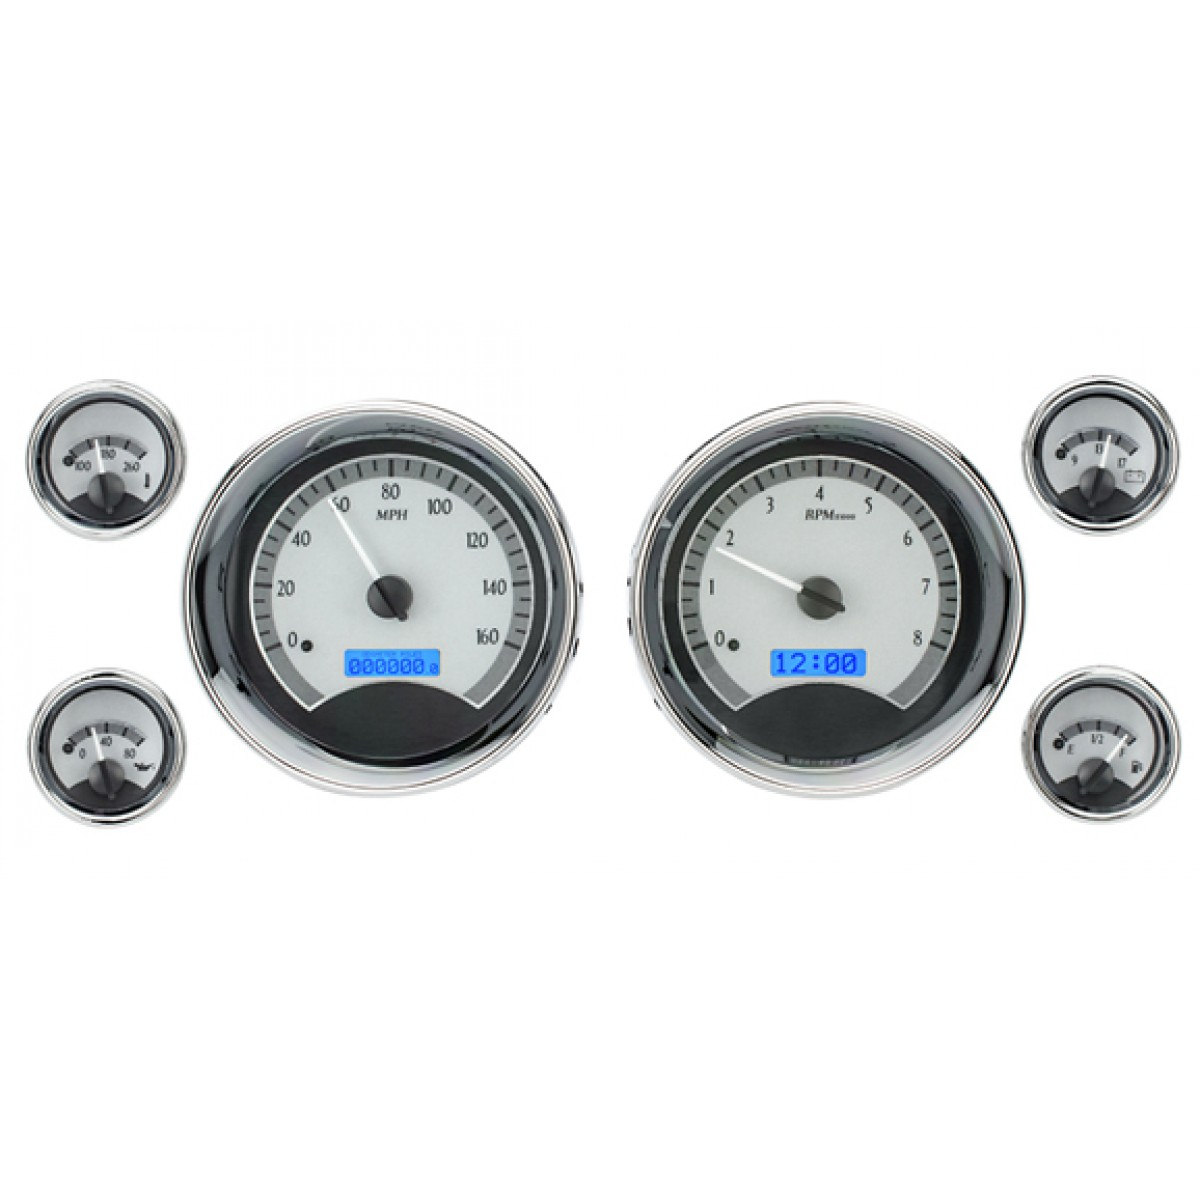 Digital Gauge Cluster : Dakota digital vhx universal six gauge round